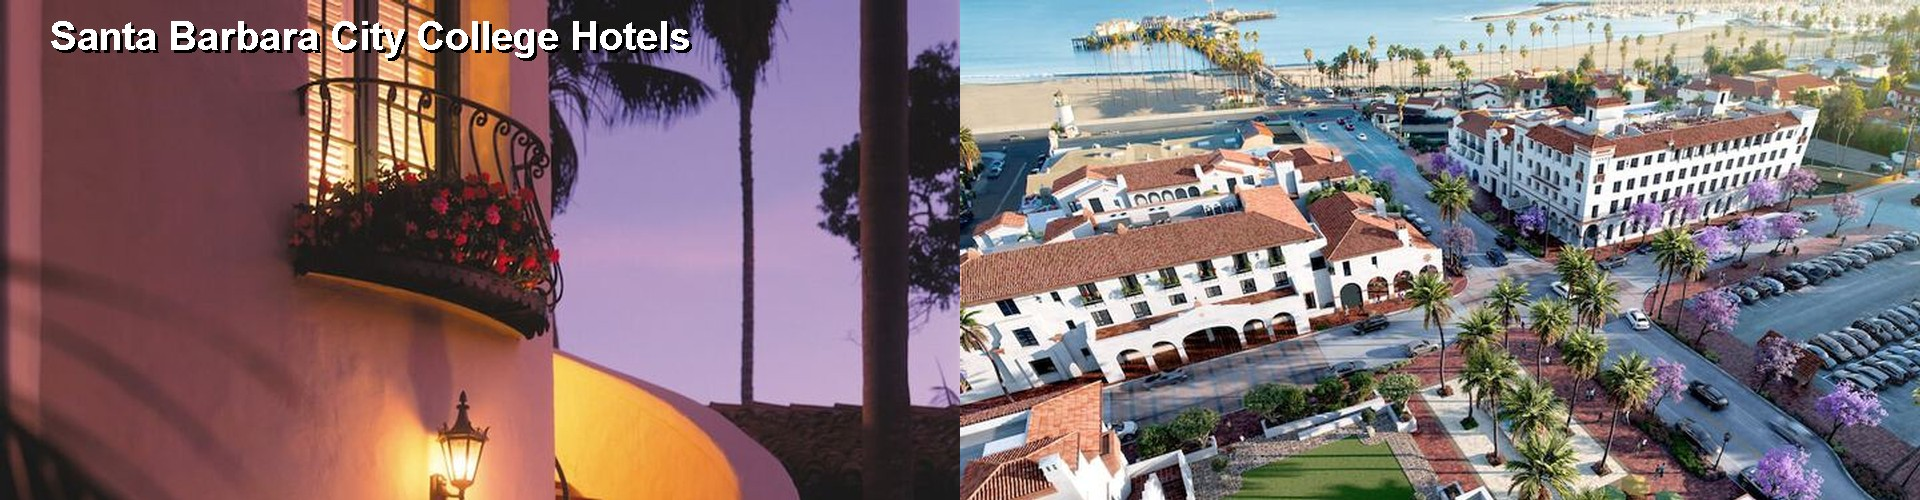 5 Best Hotels near Santa Barbara City College